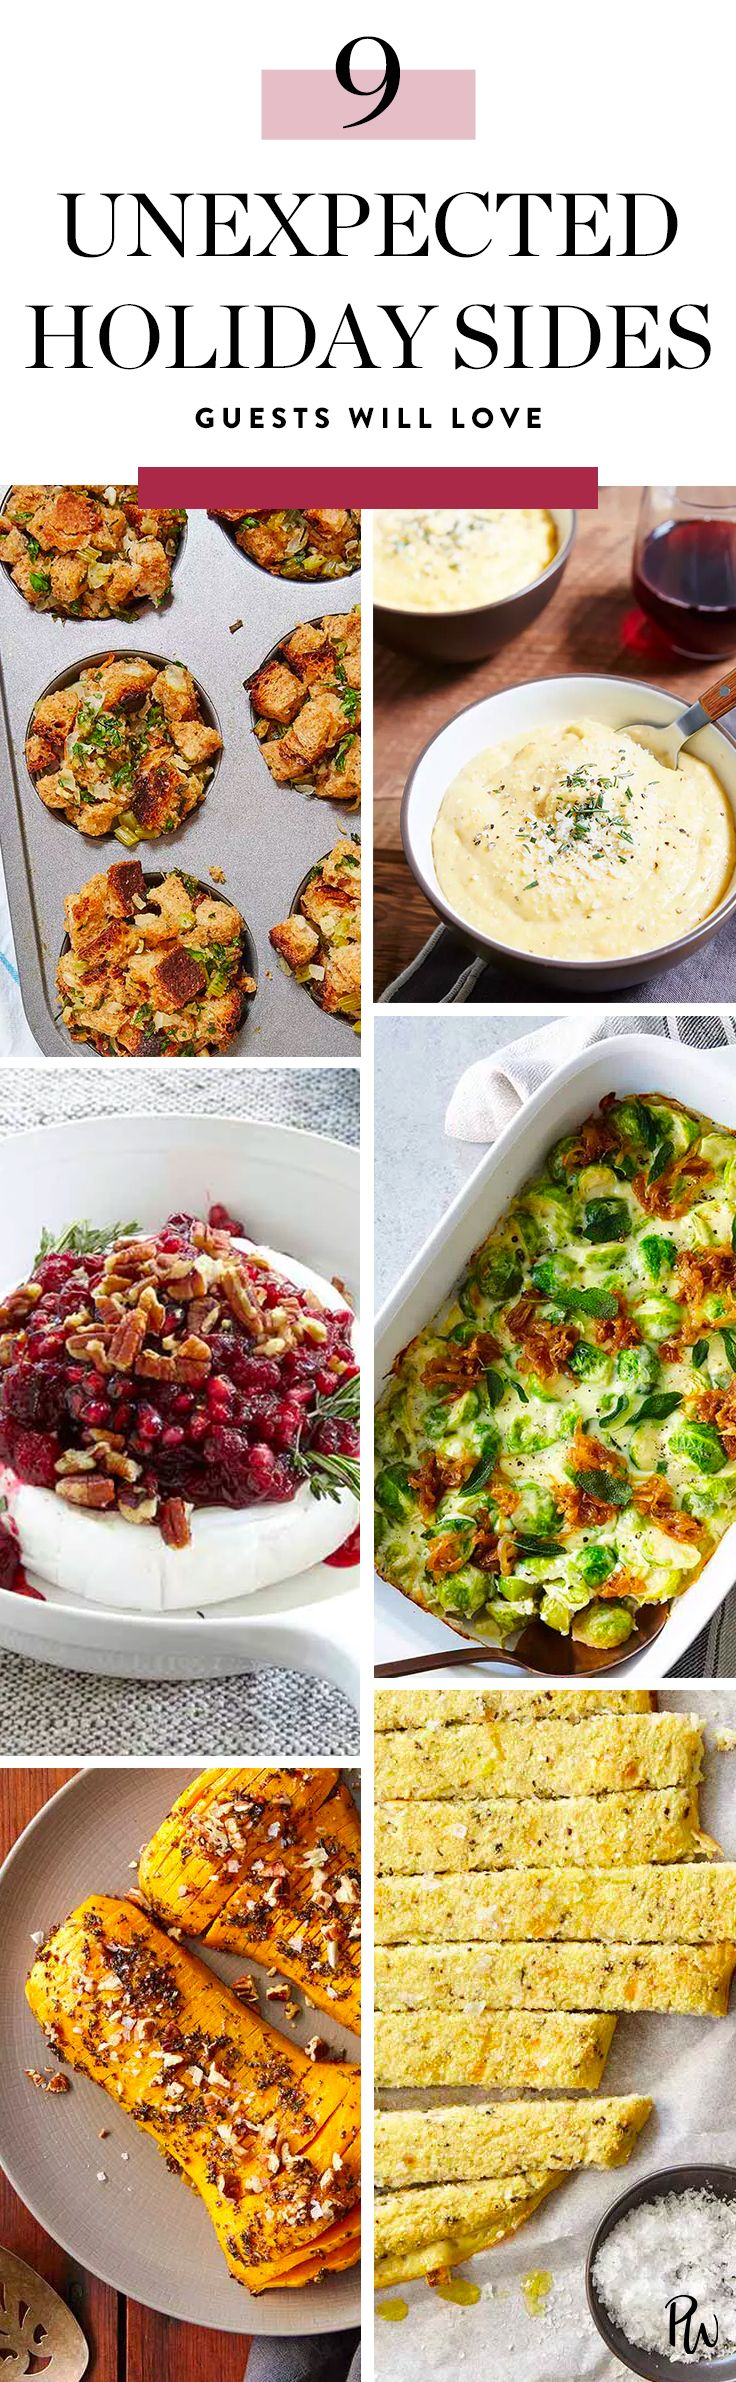 Get the recipe for these delicious and unexpected holiday sides that are sure to have your guests raving. #holidaysides #holidayfood #holidayrecipes #thanksgiving #thanksgivingrecipes #thanksgivingfood #thanksgivingappetizers #appetizerrecipes #holidayappetizers #thanksgivingsides